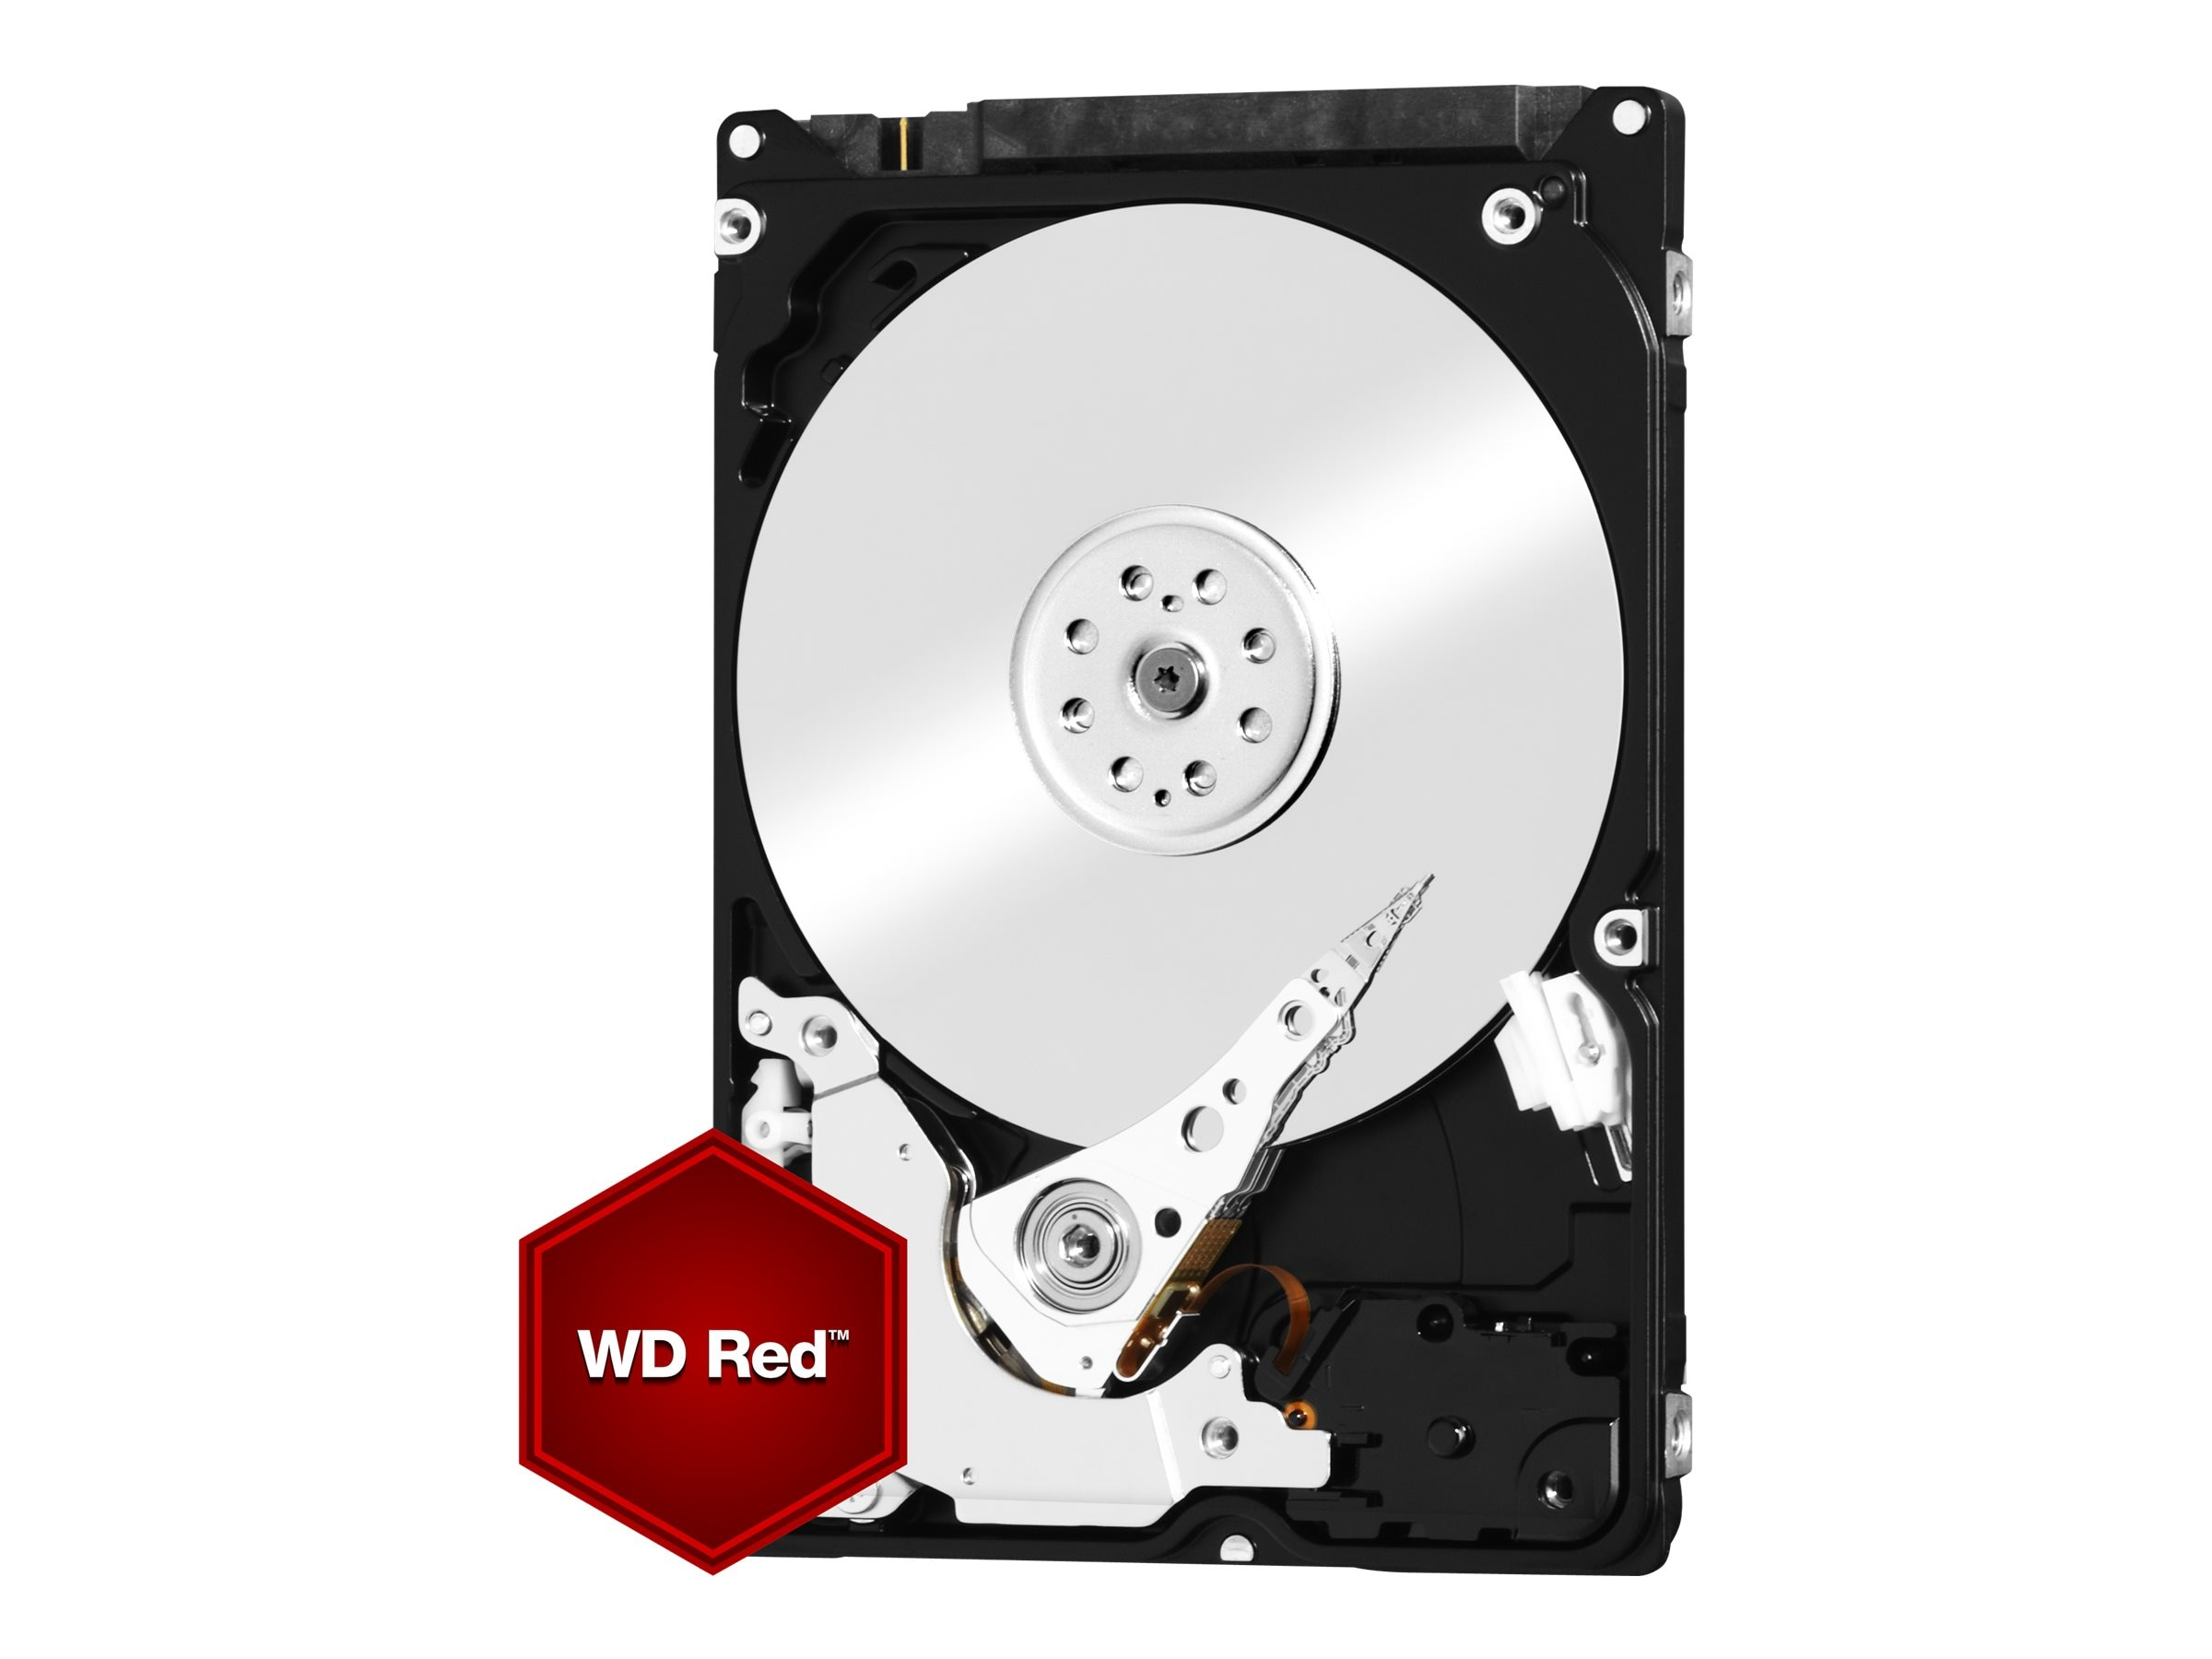 Open Box WD 750GB WD Red SATA 6Gb s 2.5 Internal NAS Hard Drives (50-pack), WD7500BFCX-50PK